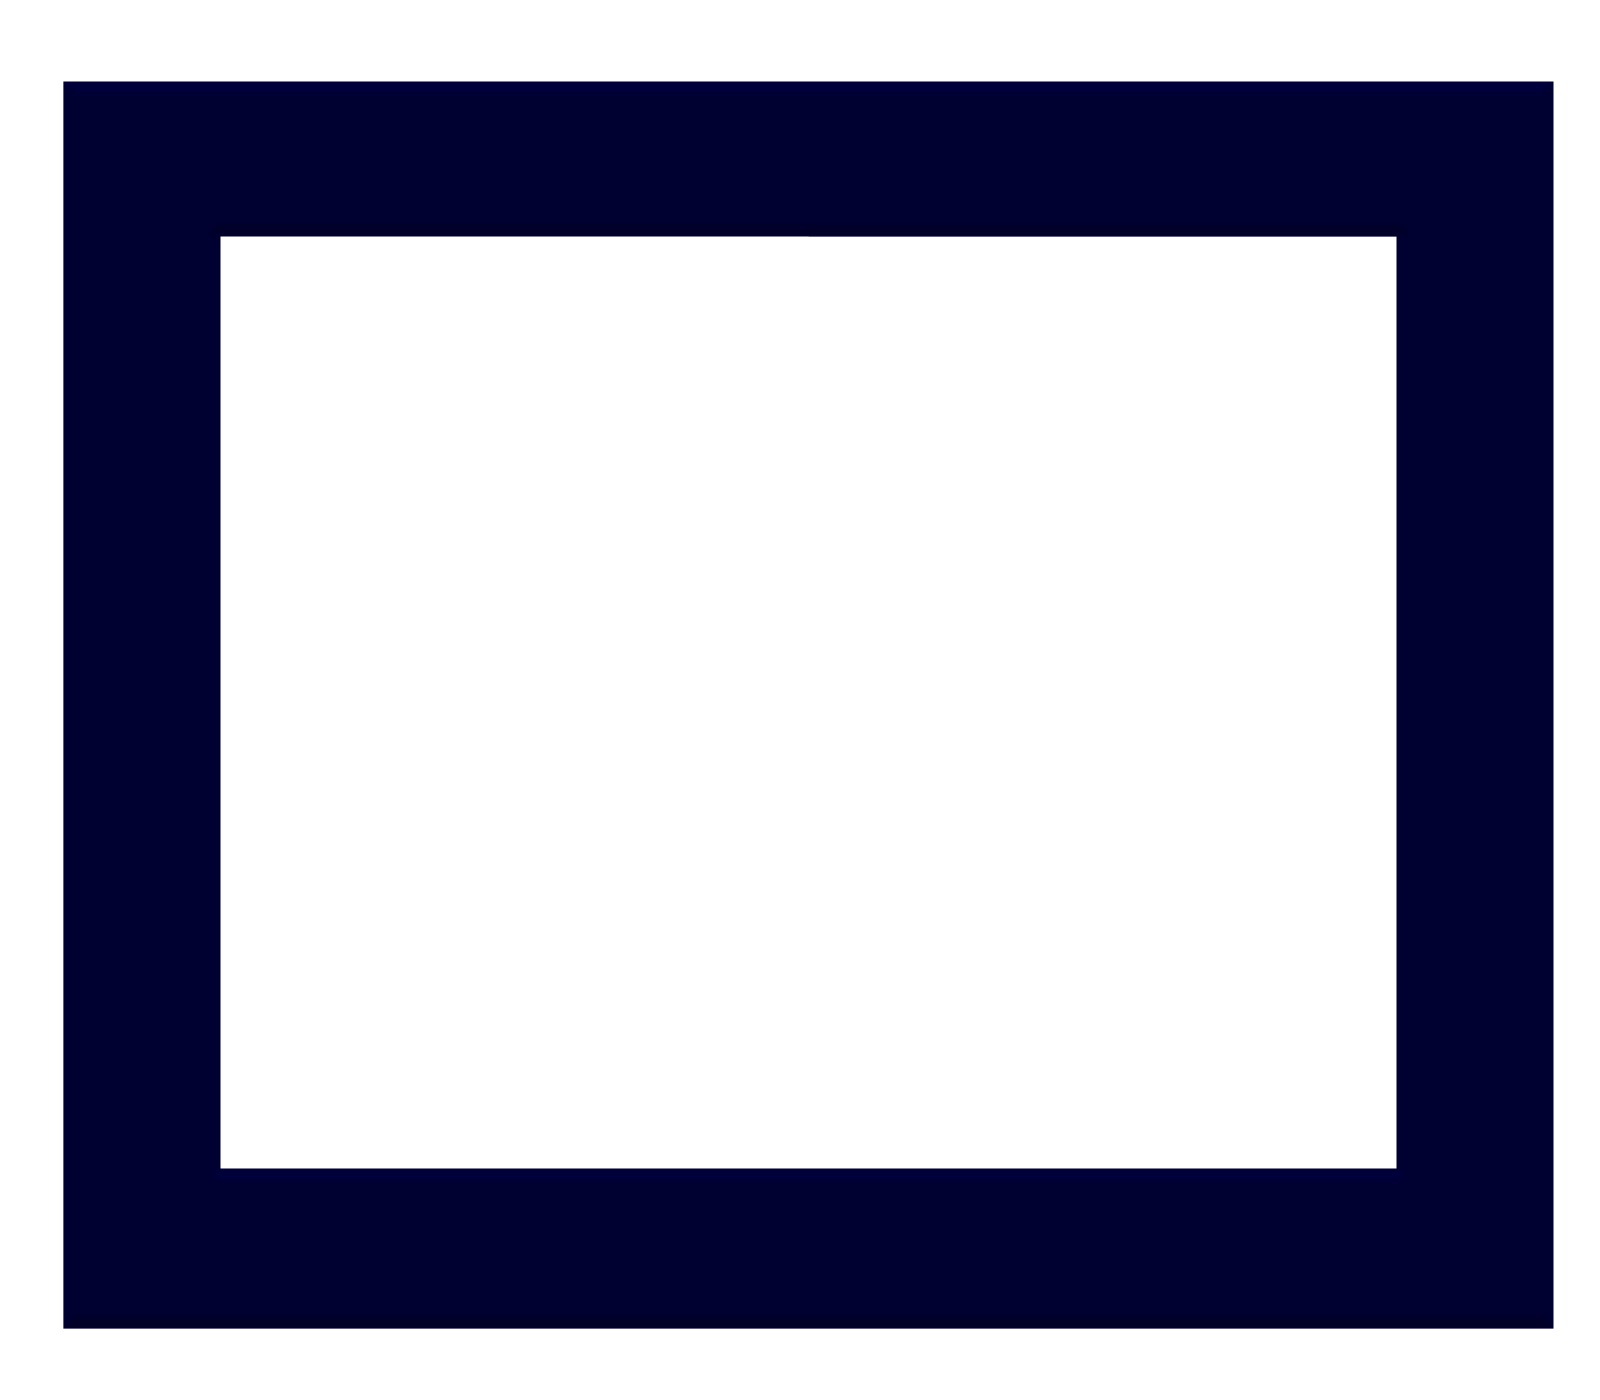 Picture frame free icons. Square clipart background